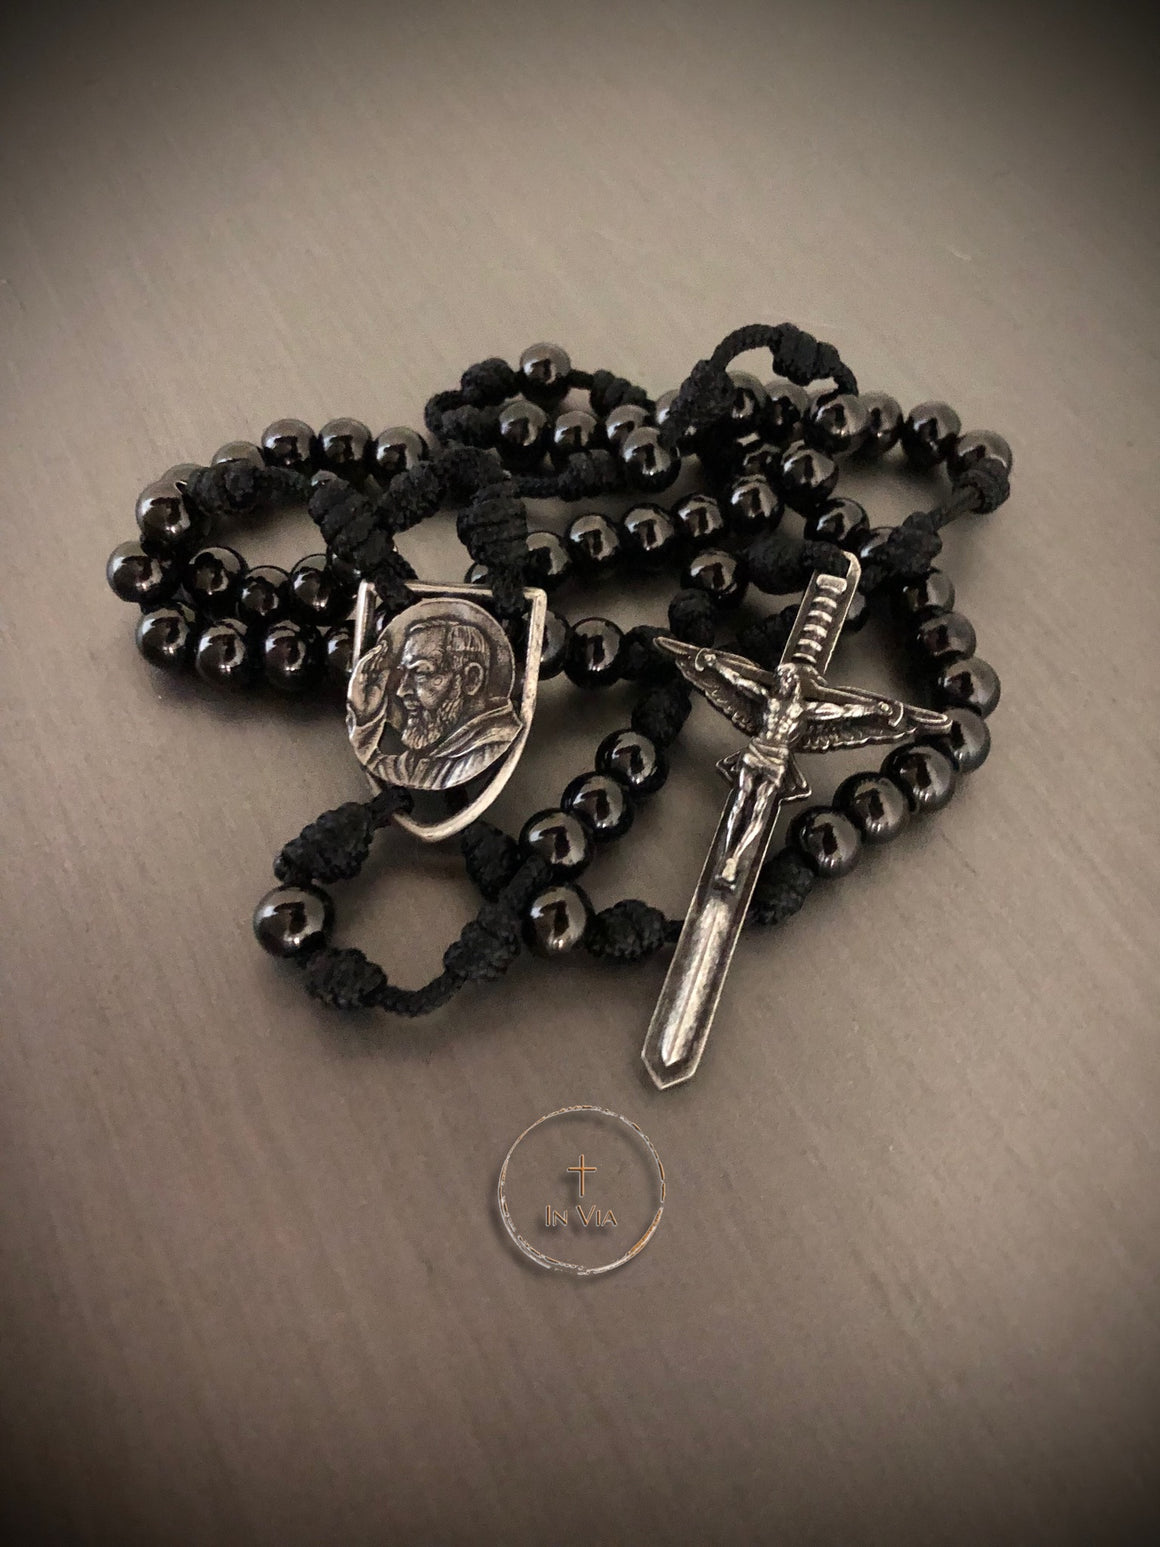 In Via St. Padre Pio Defender Rosary -Black Stainless Steel